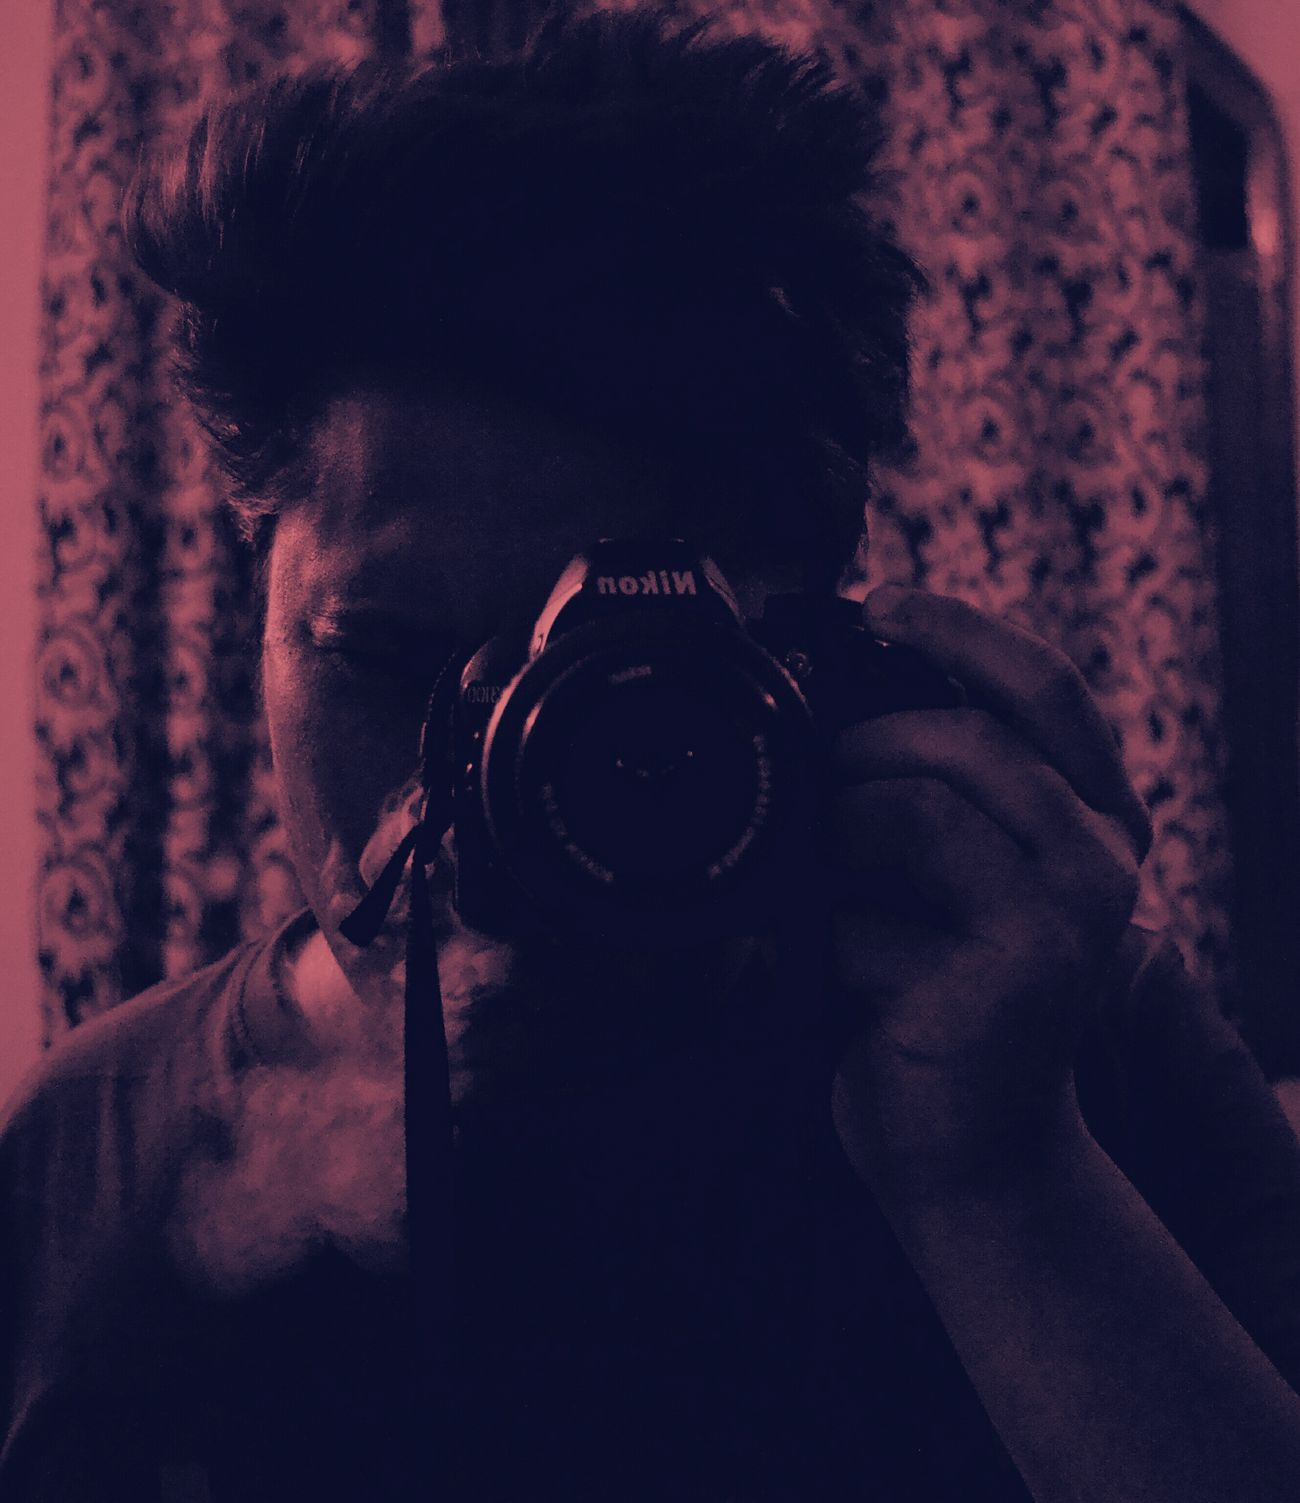 Me, My Camera And I Me Photo Taking Photos Its Me Selfie Selfportrait That's Me Cigrettes Creativity